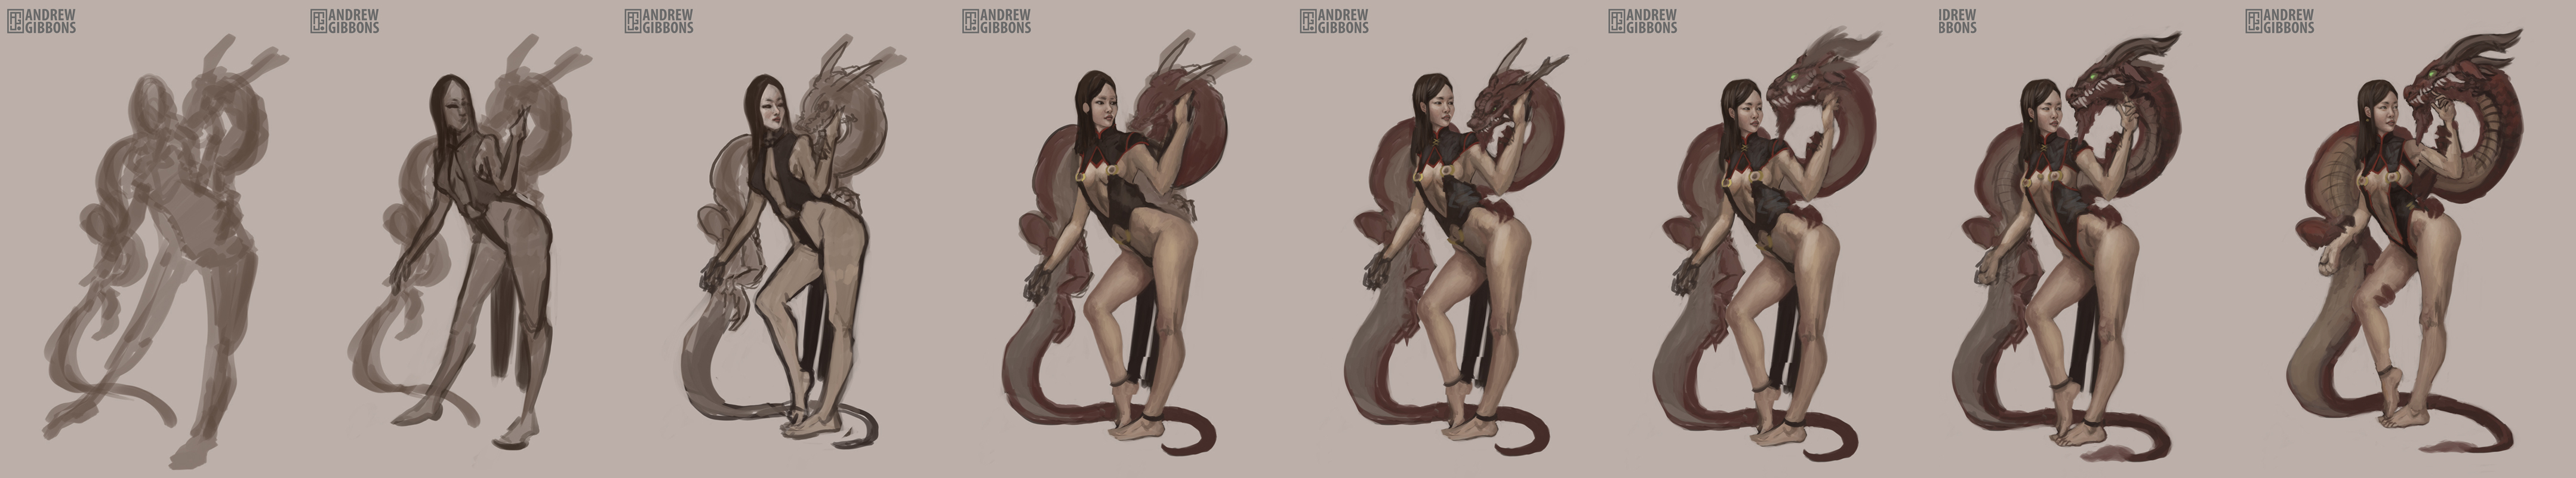 [Image: dragongirl_by_andrew_gibbons-dbp0b7w.jpg]